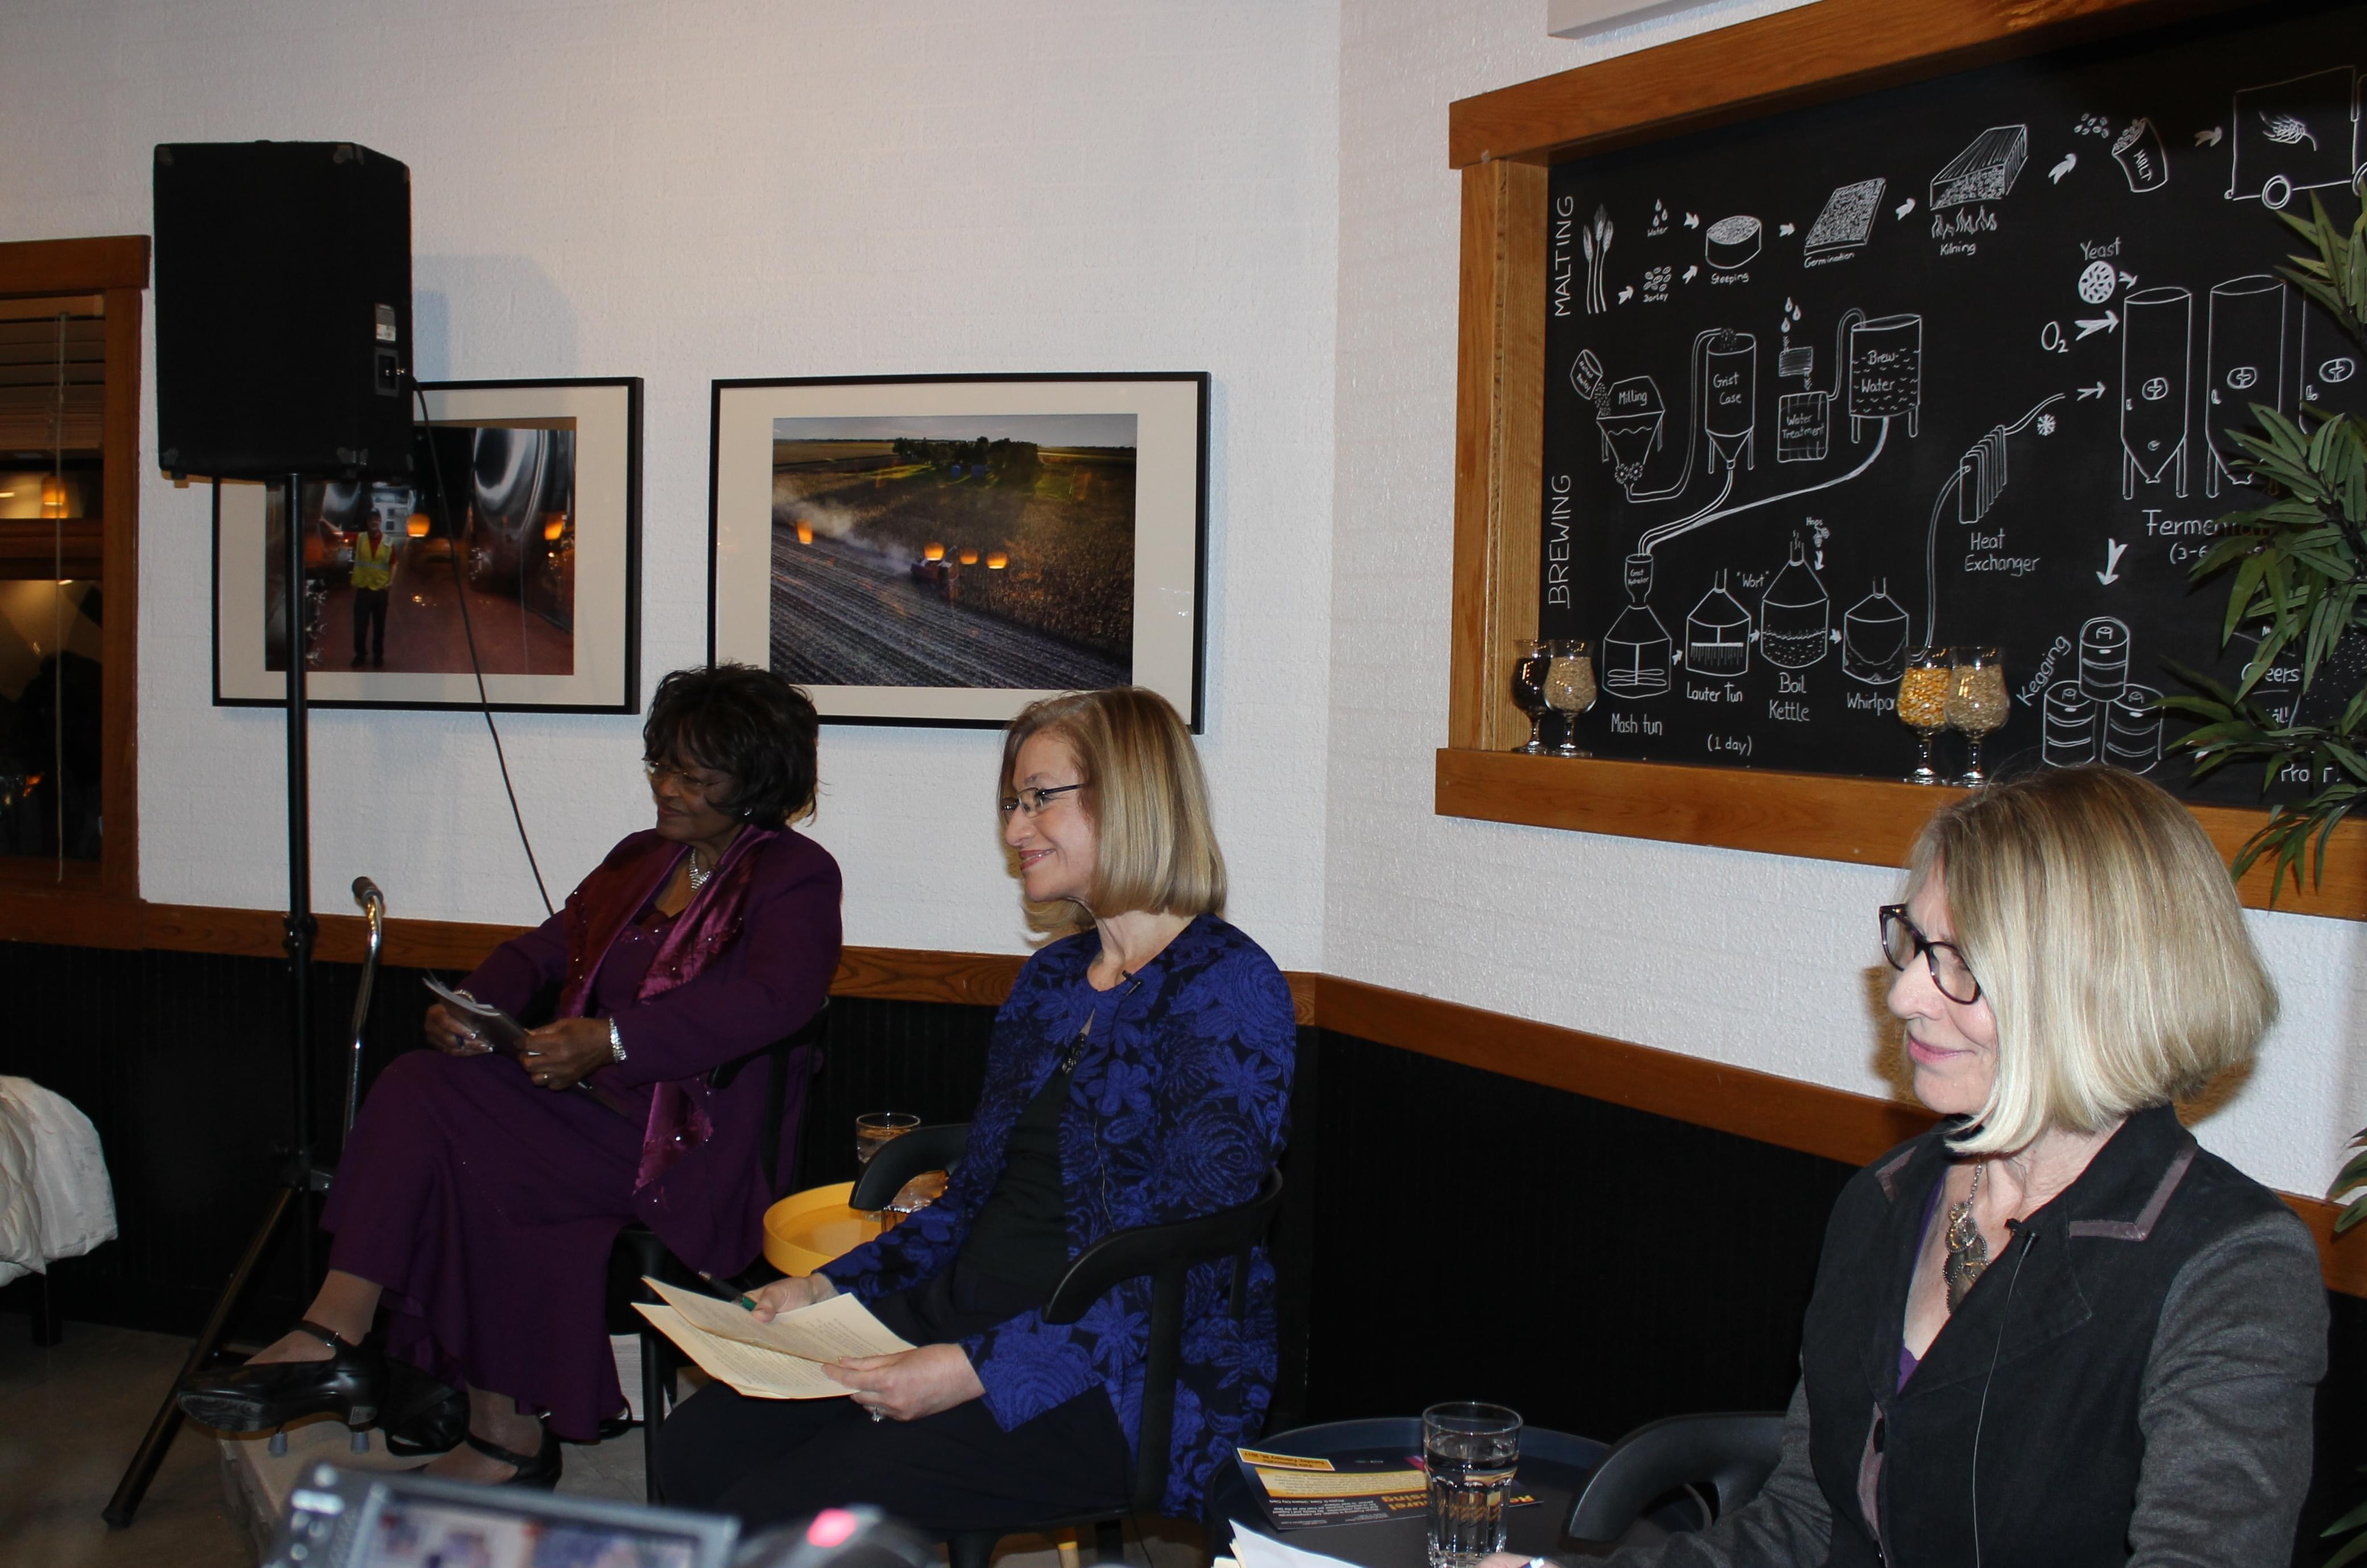 Rev. Evelyn Burnett Underwood, Incument Mayor Laurel Prussing, and Alderwoman Diane Marlin debated at Urbana's Riggs Brewery Wednesday.